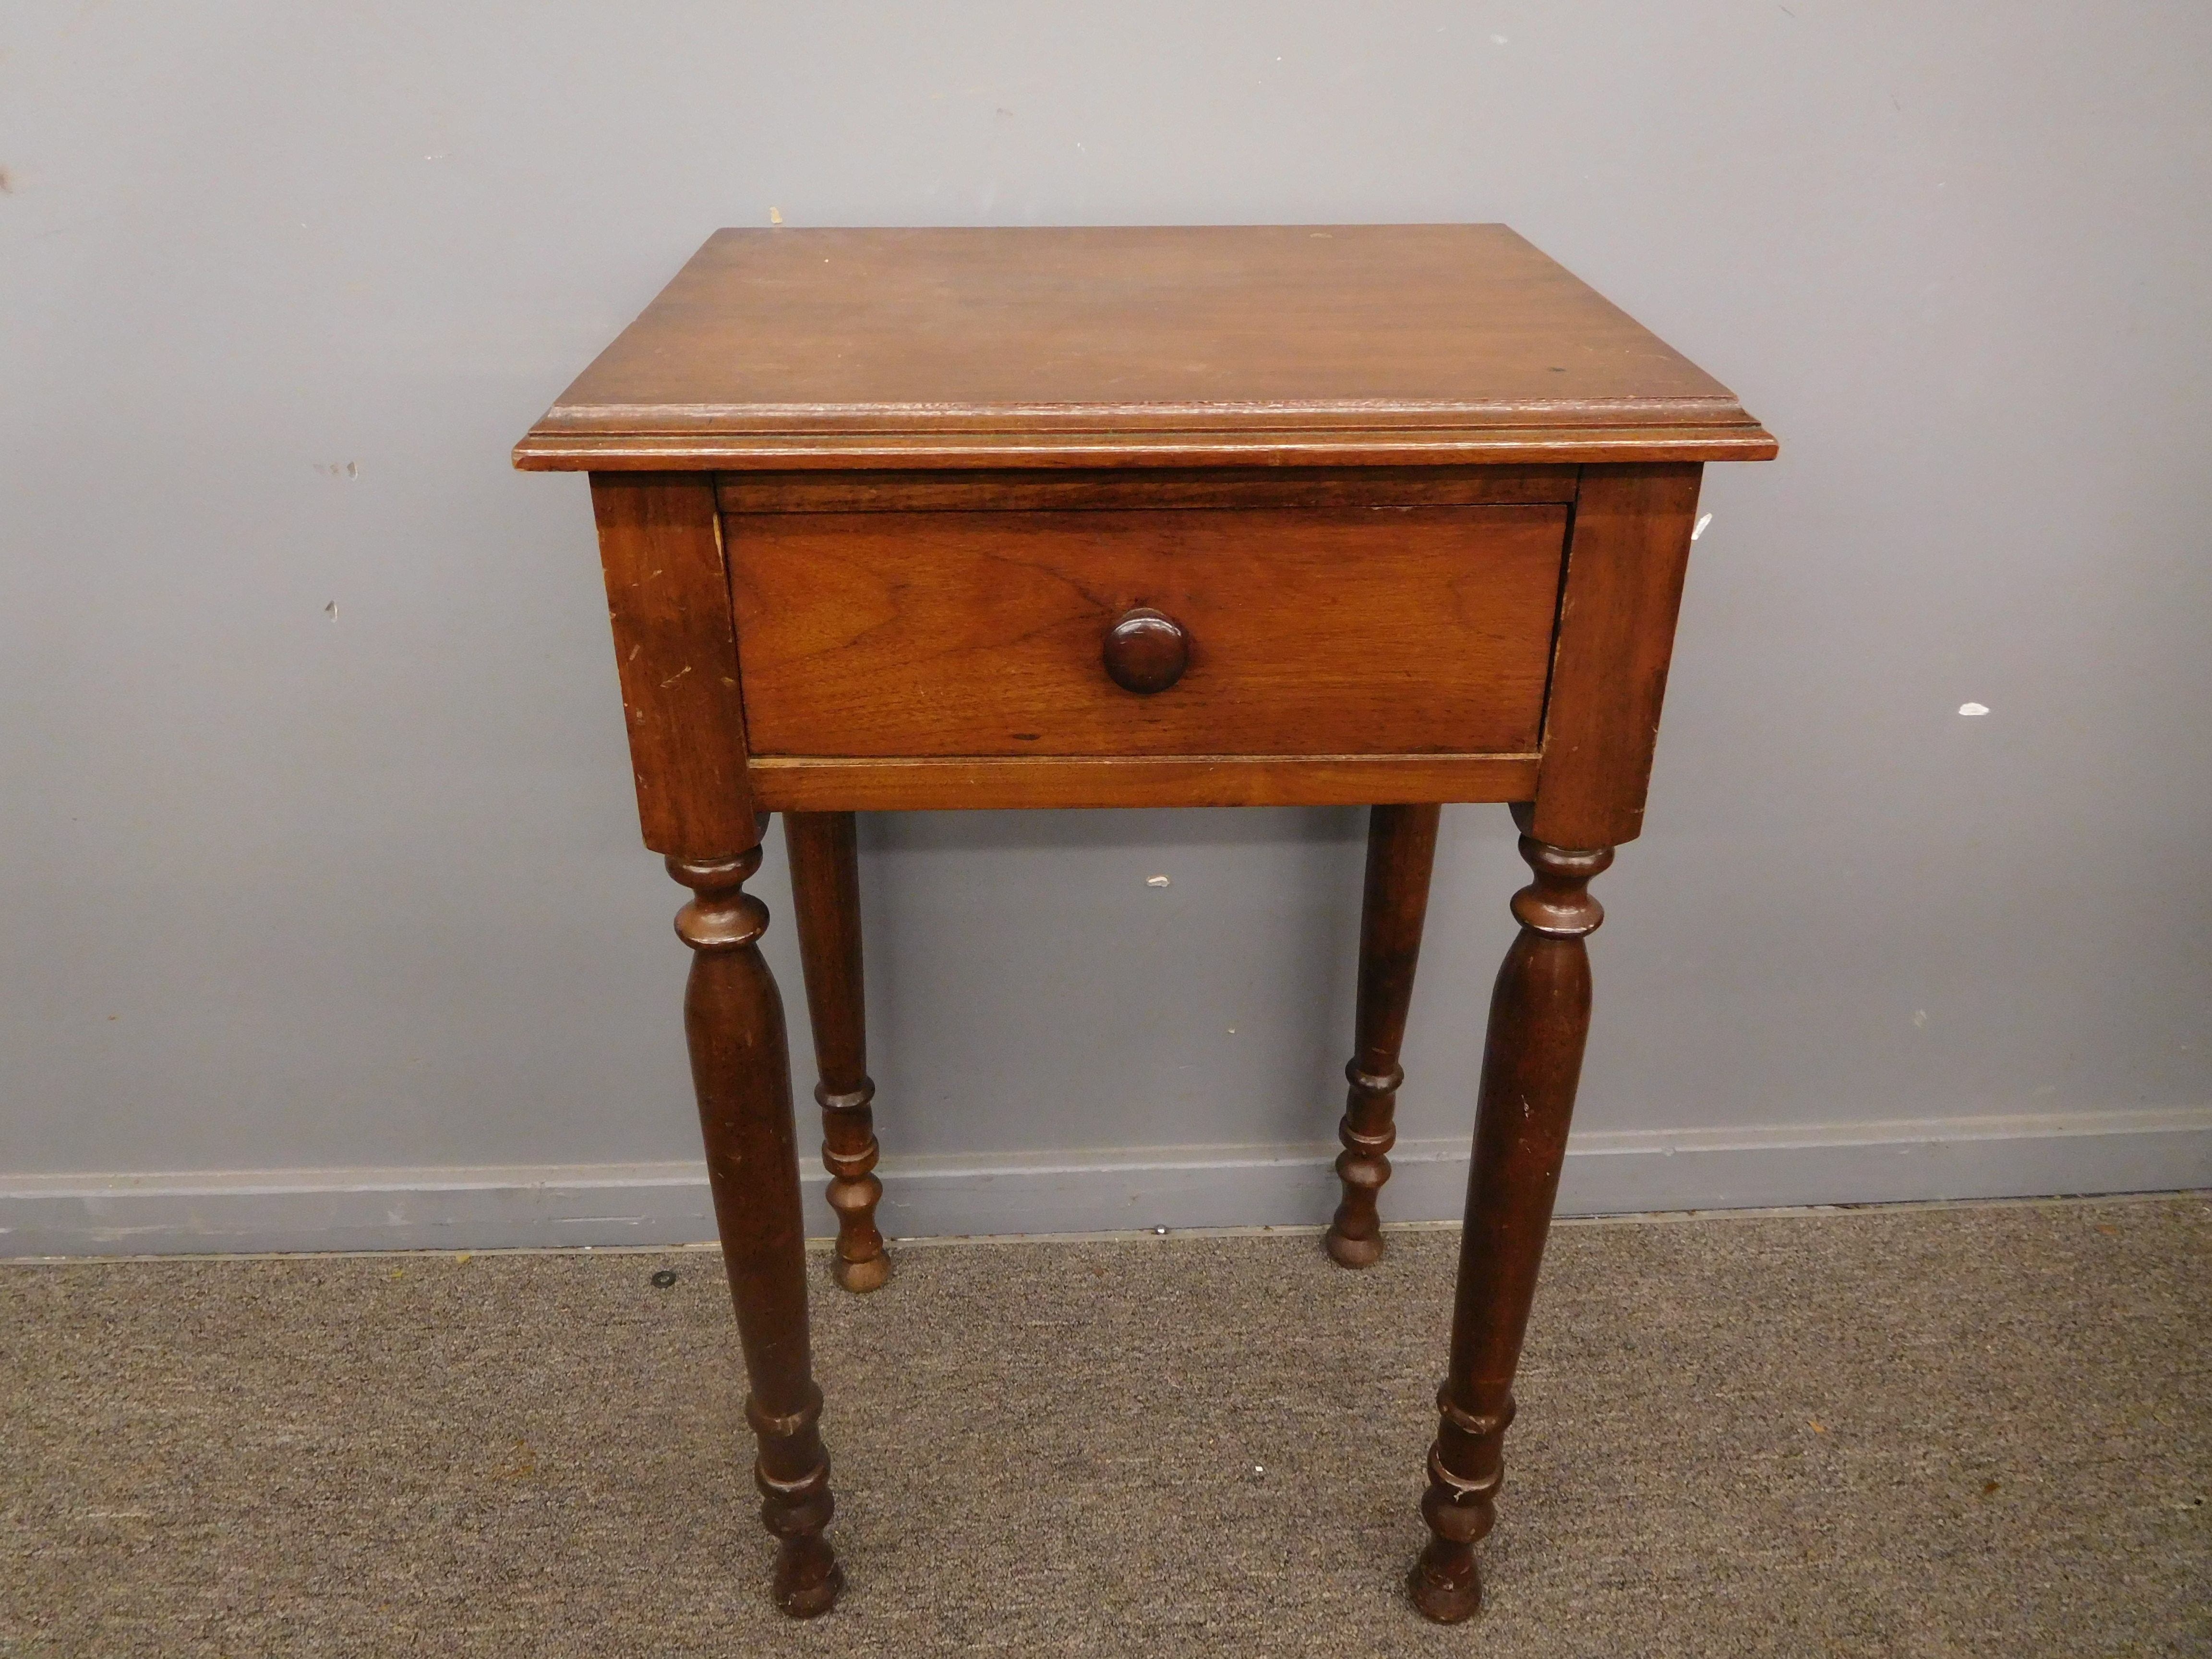 Vintage 1-Drawer Accent Table